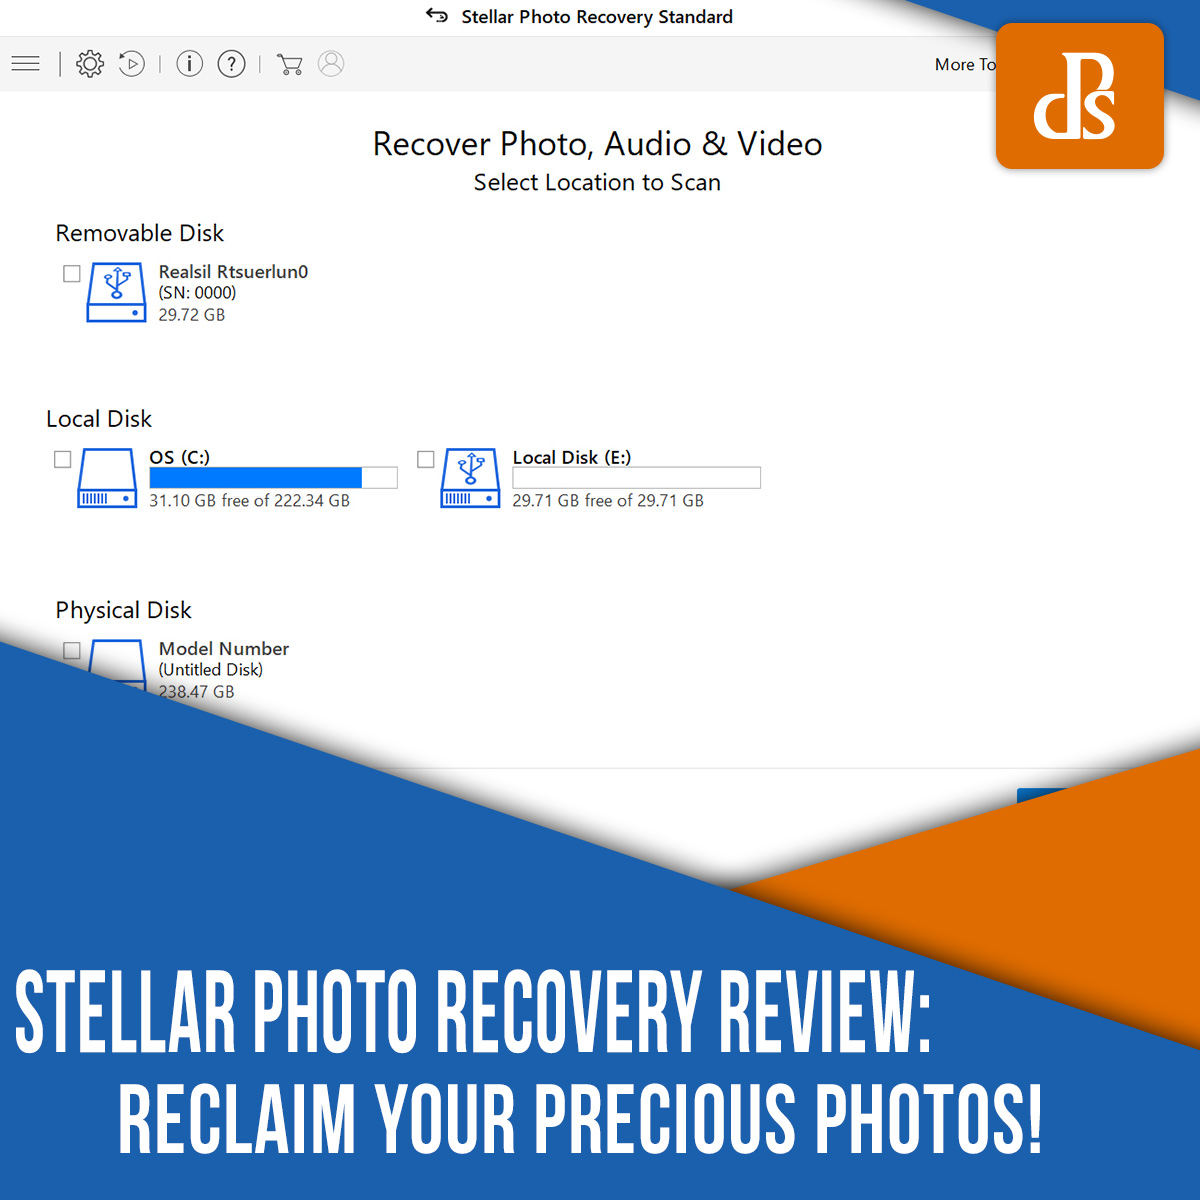 https://i0.wp.com/digital-photography-school.com/wp-content/uploads/2020/12/stellar-photo-recovery-review-1000.jpg?resize=1200%2C1200&ssl=1